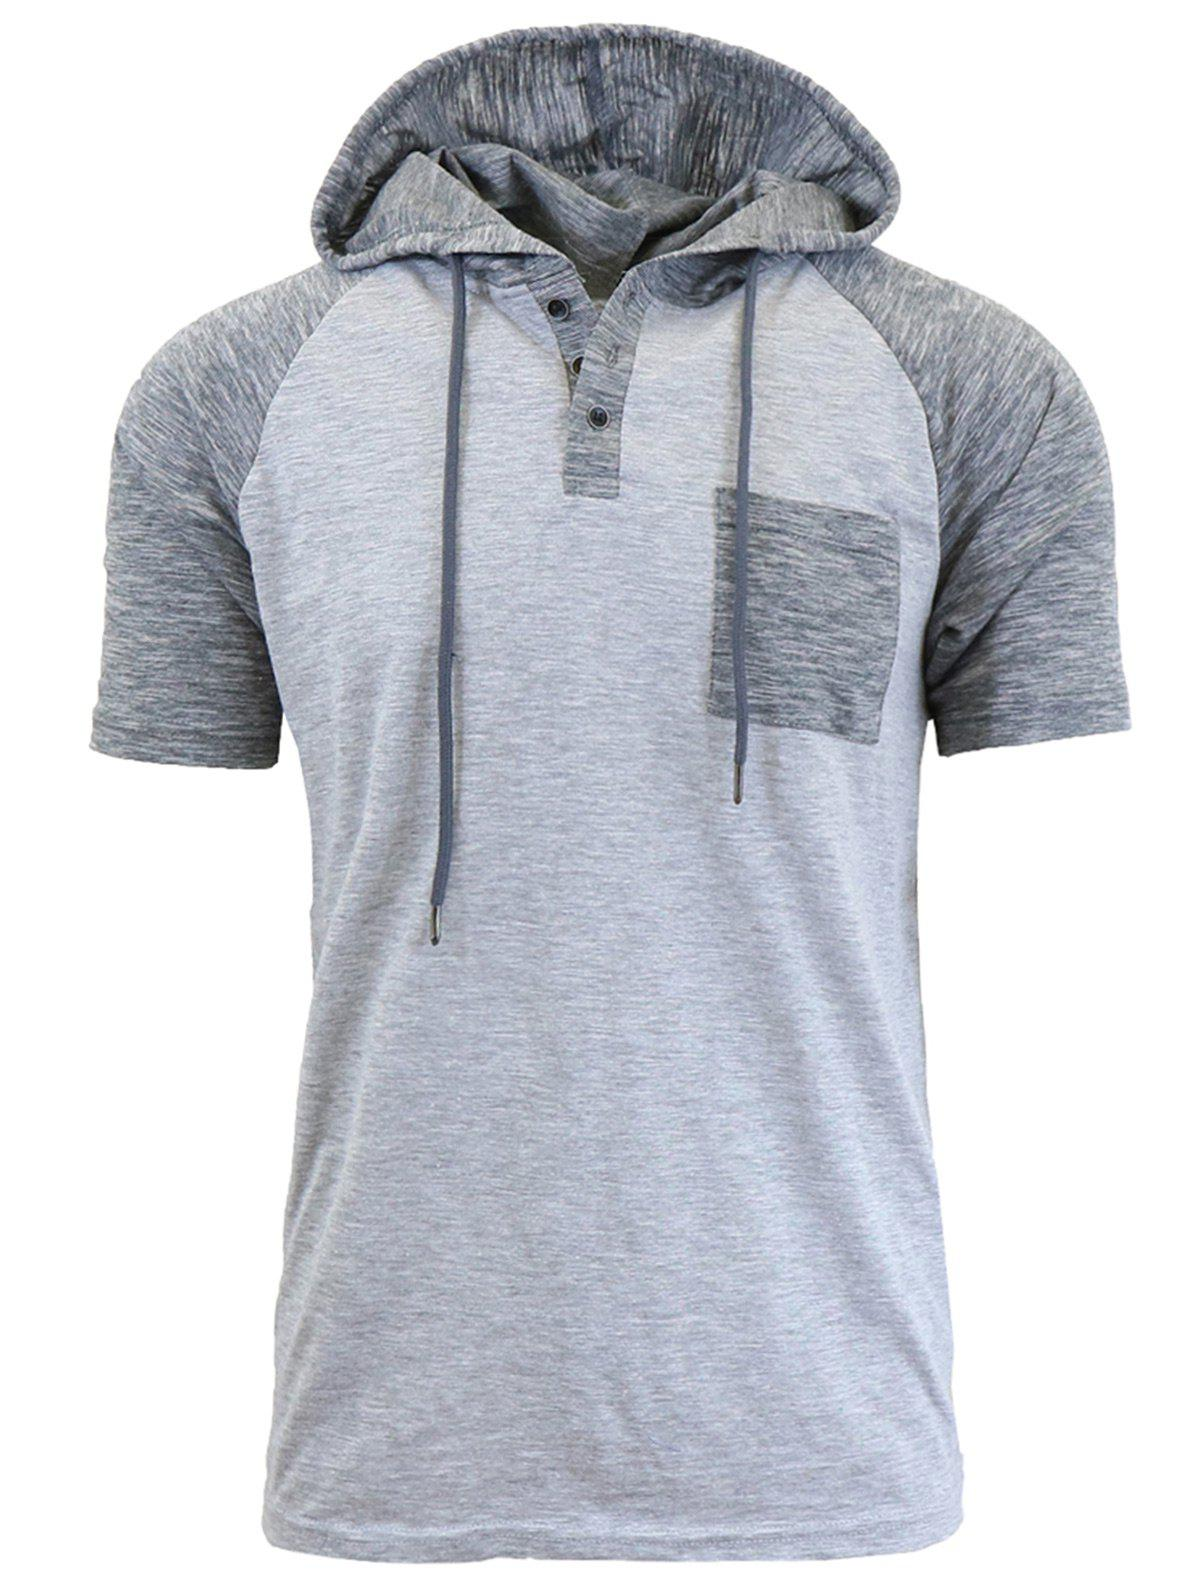 Hooded Drawstring Raglan Sleeve Panel Design T-shirt - Gris Clair L